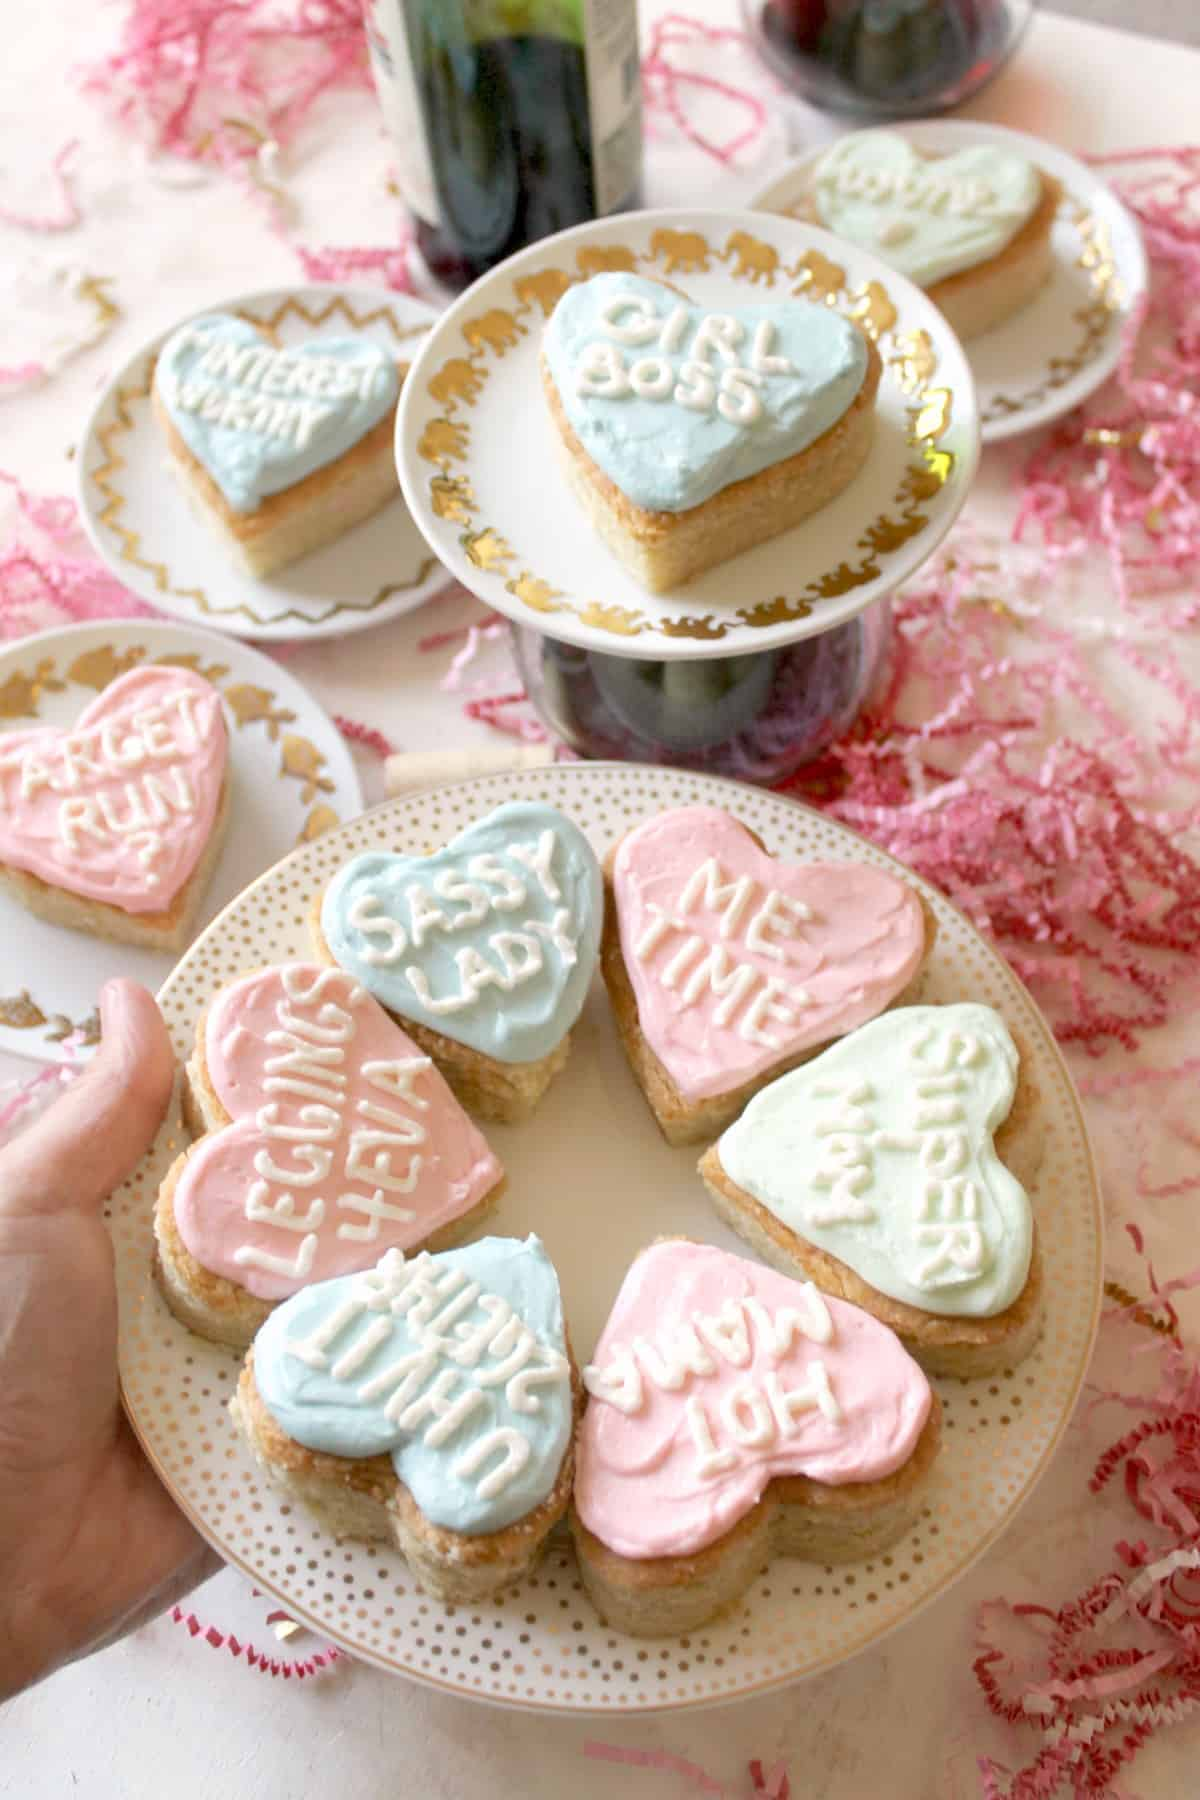 Conversation Heart Cookie Bars